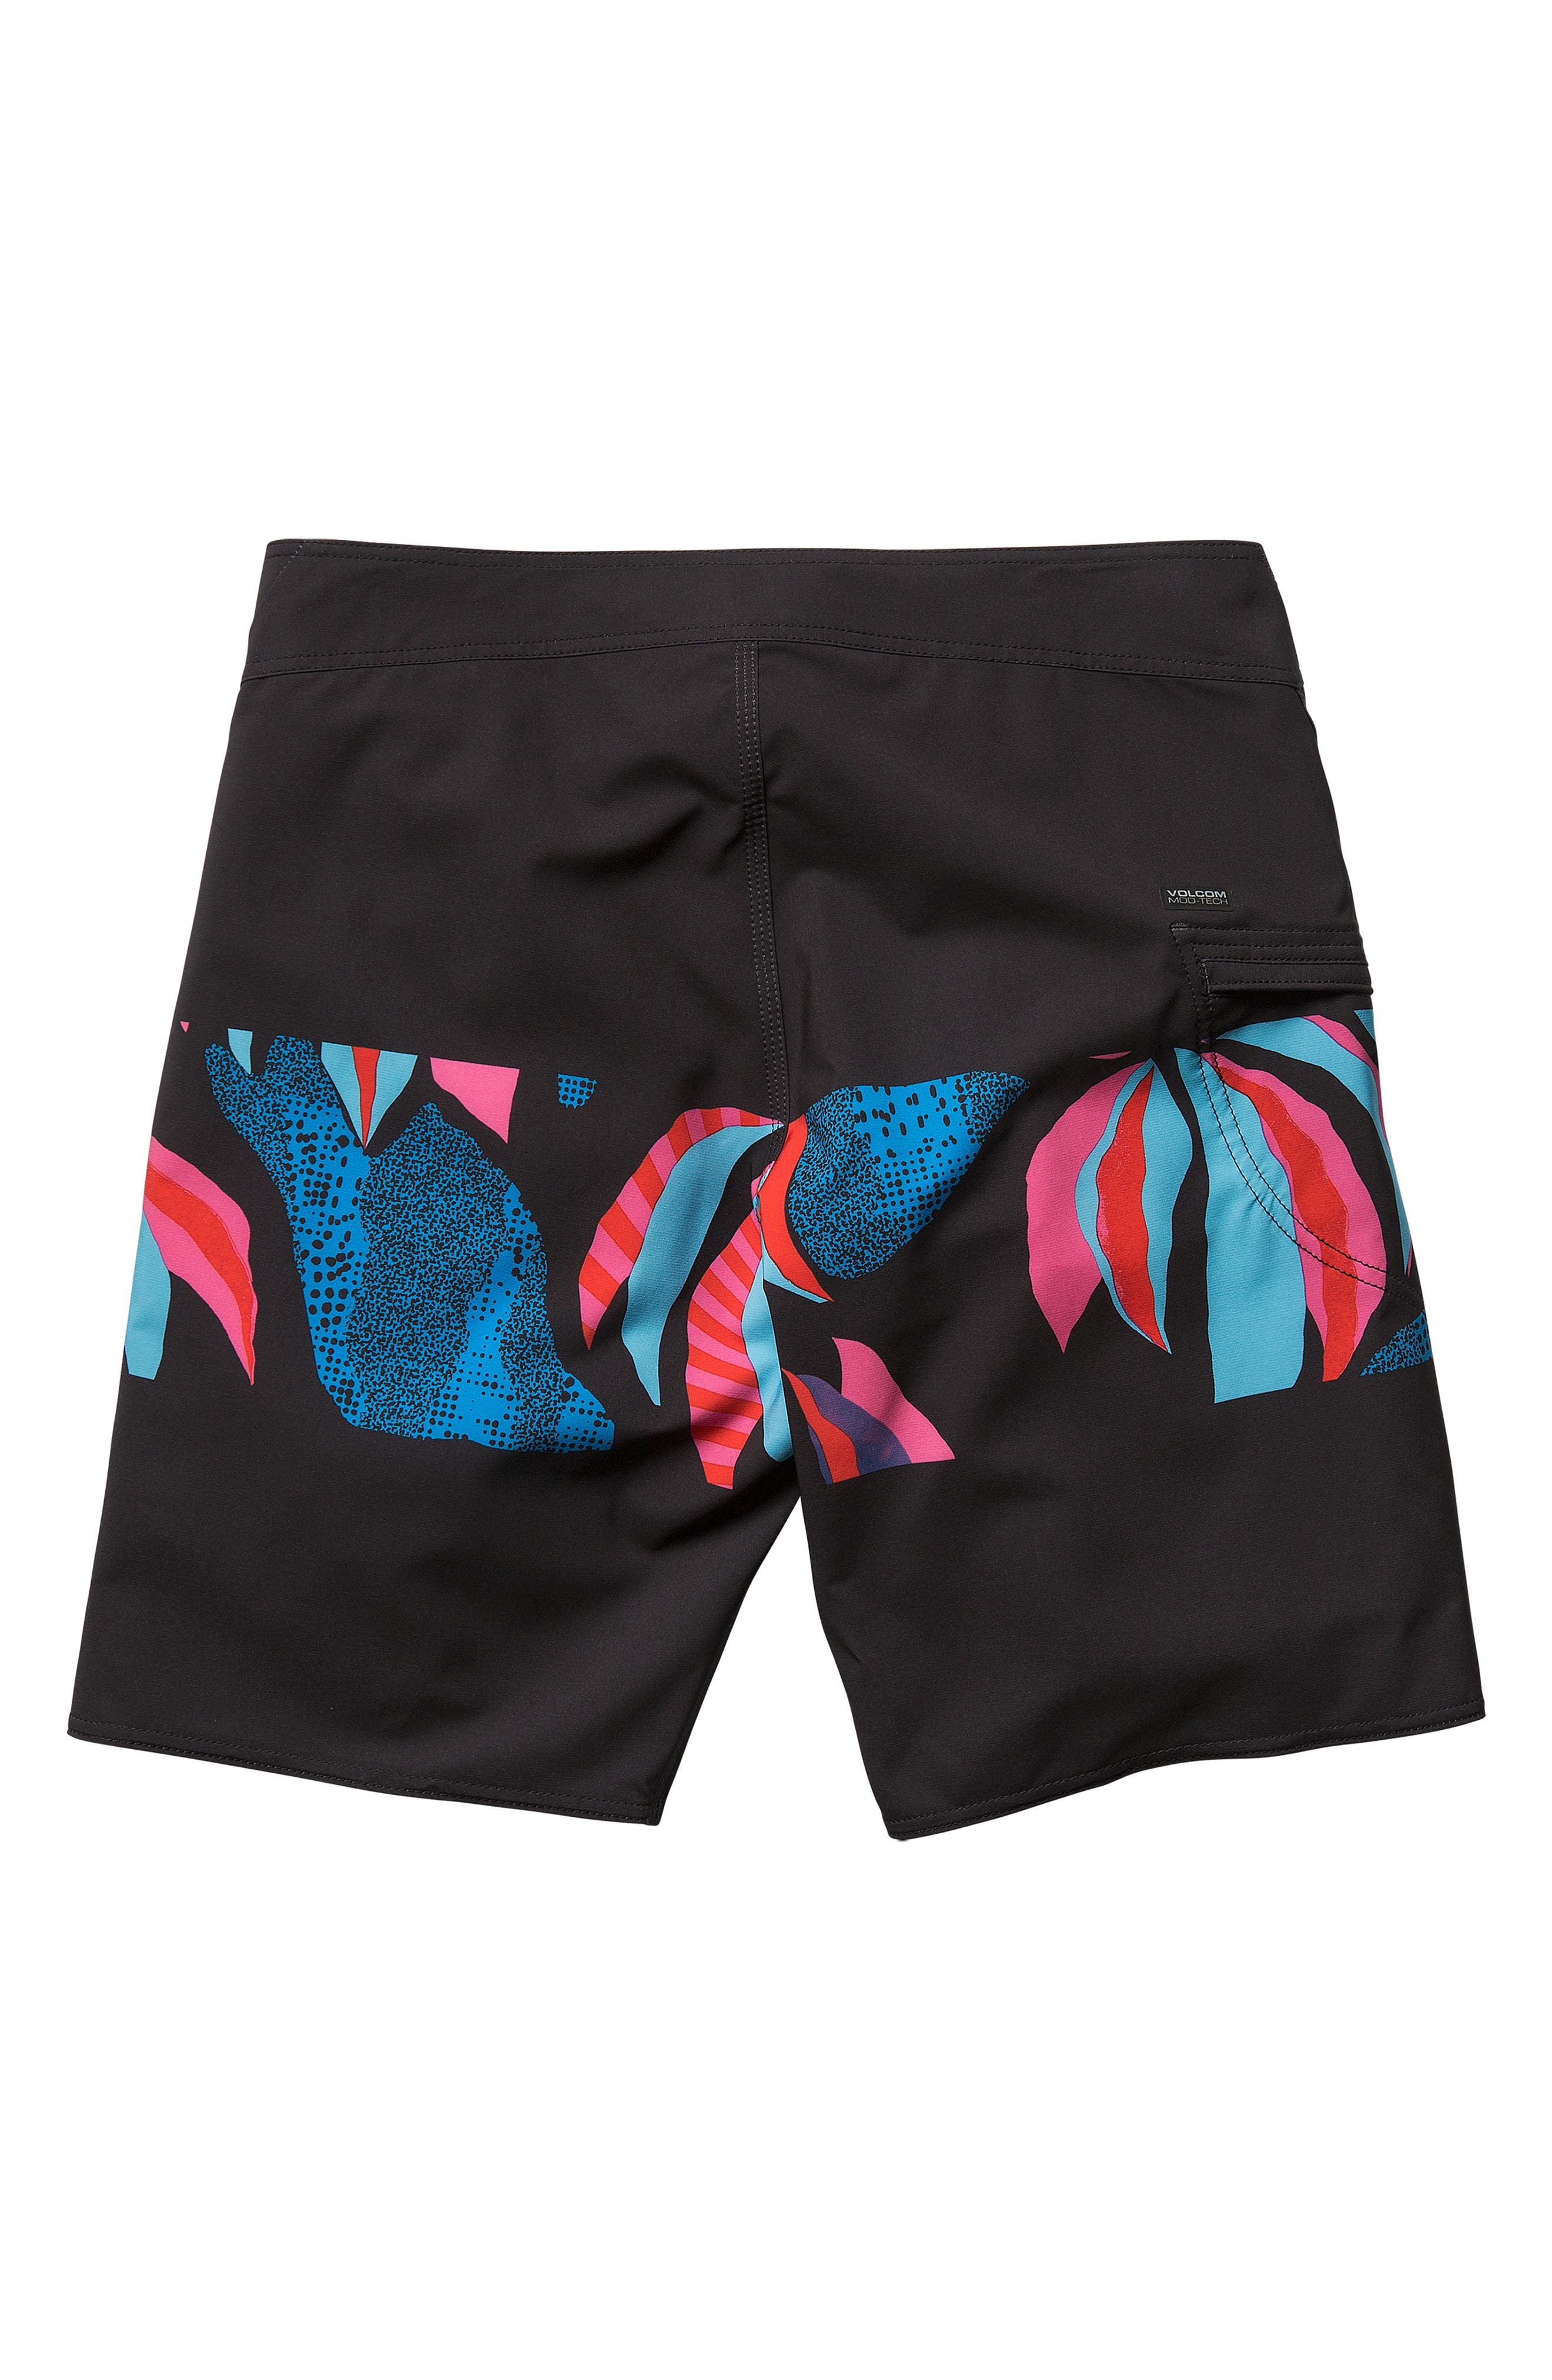 Macaw Mod Board Shorts,                             Alternate thumbnail 5, color,                             NEW BLACK